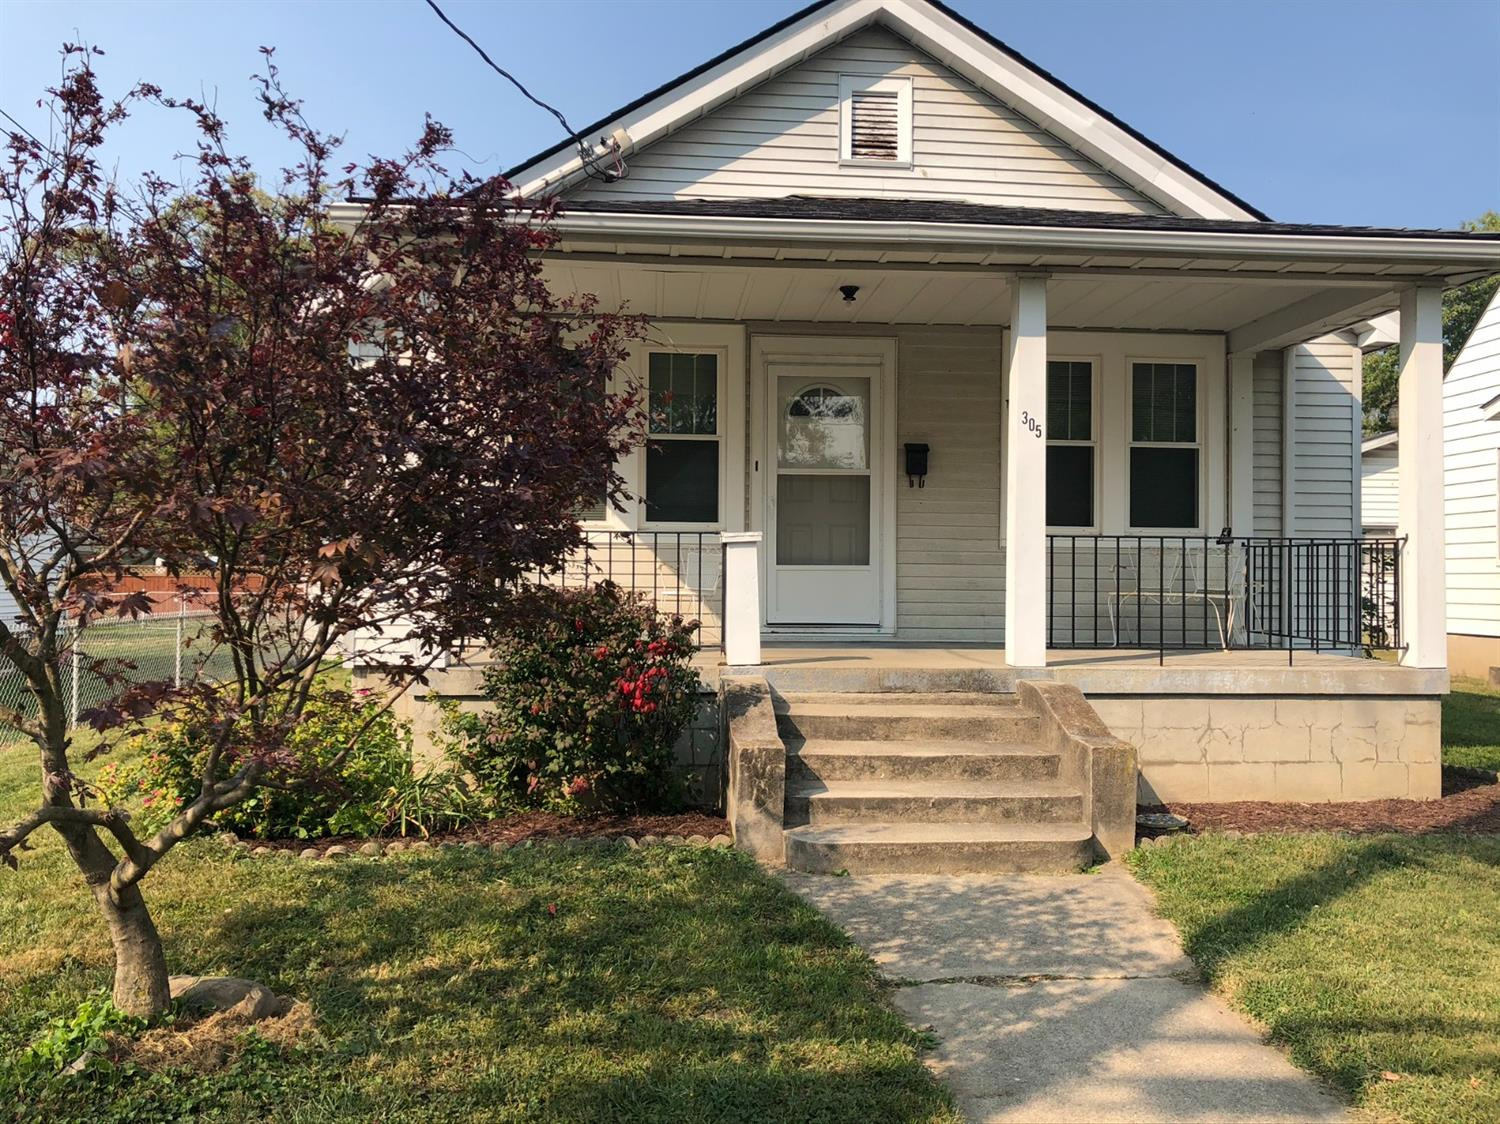 Property for sale at 305 N Sycamore Street, Harrison,  Ohio 45030